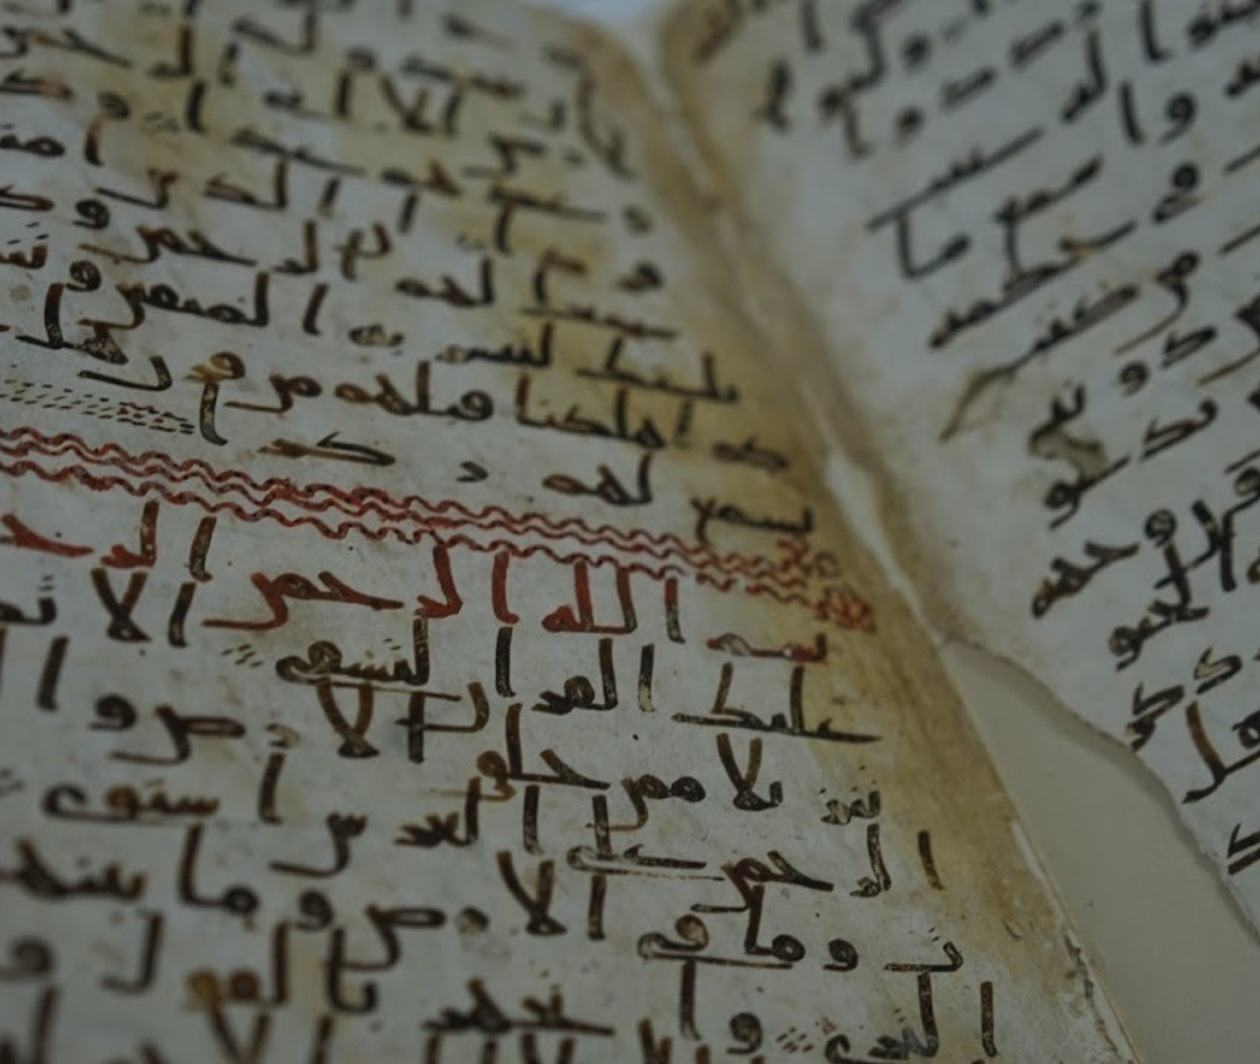 The Birmingham Qur'an: Its Journey from the Islamic Heartlands